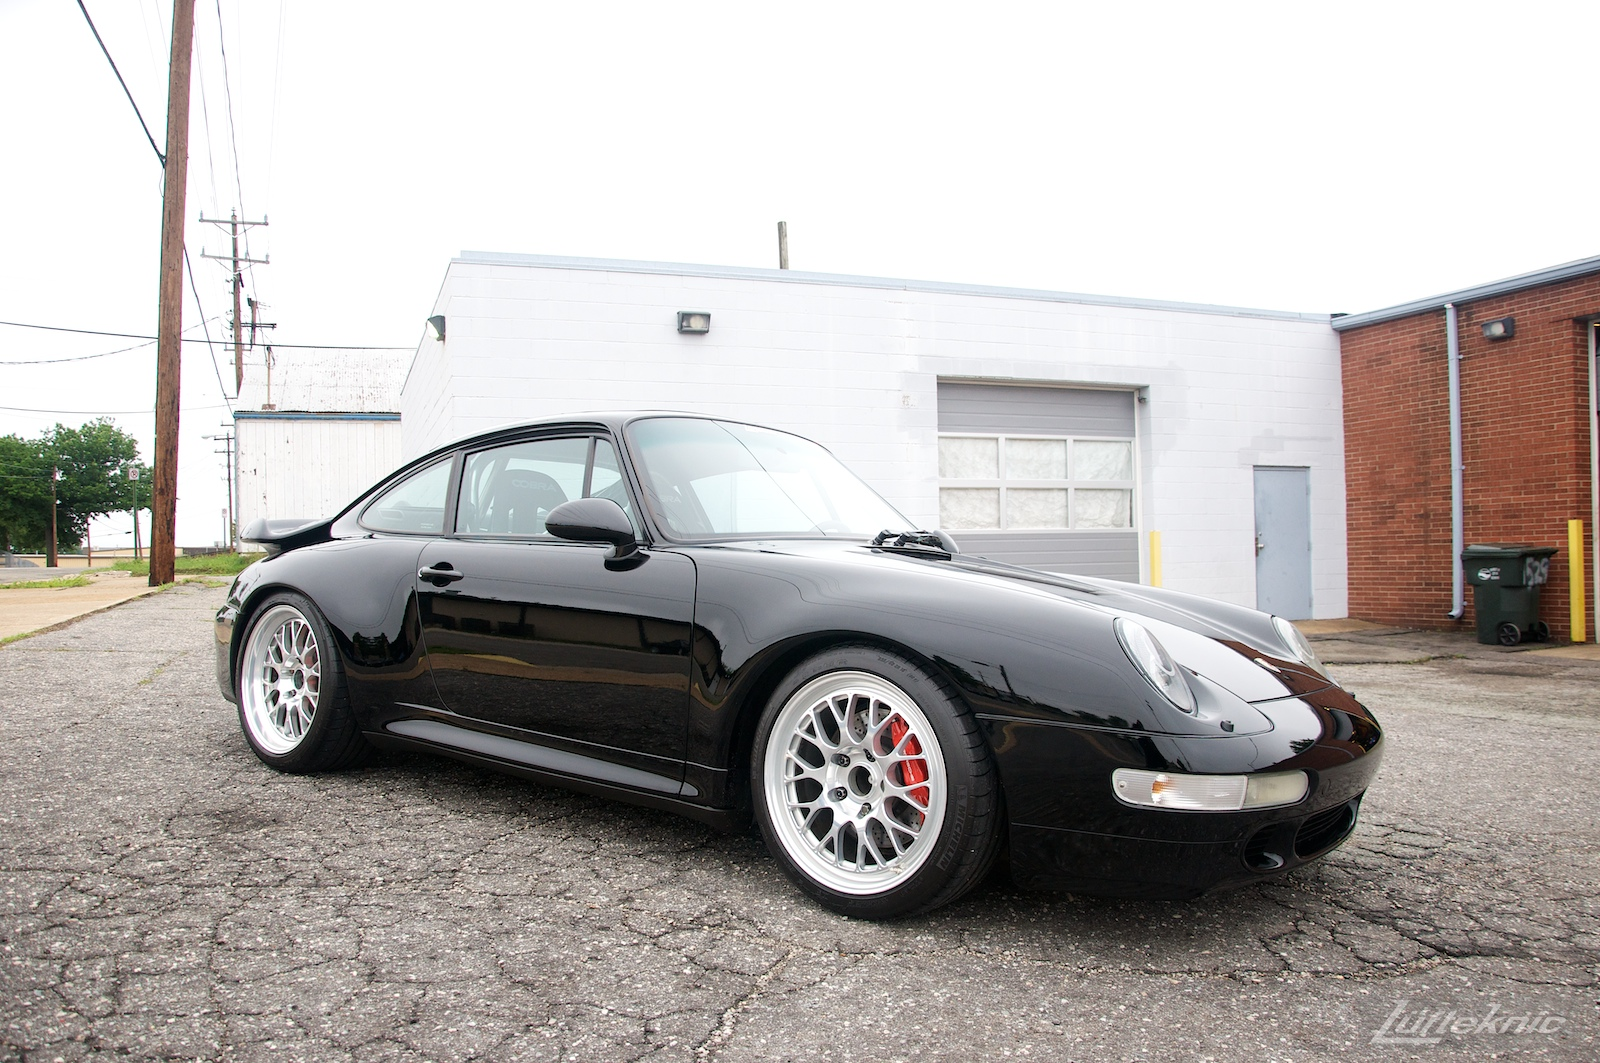 A freshly detailed shiny black 993 Turbo GT2 rear wheel drive conversion sits in the Lufteknic parking lot ready for pick up.